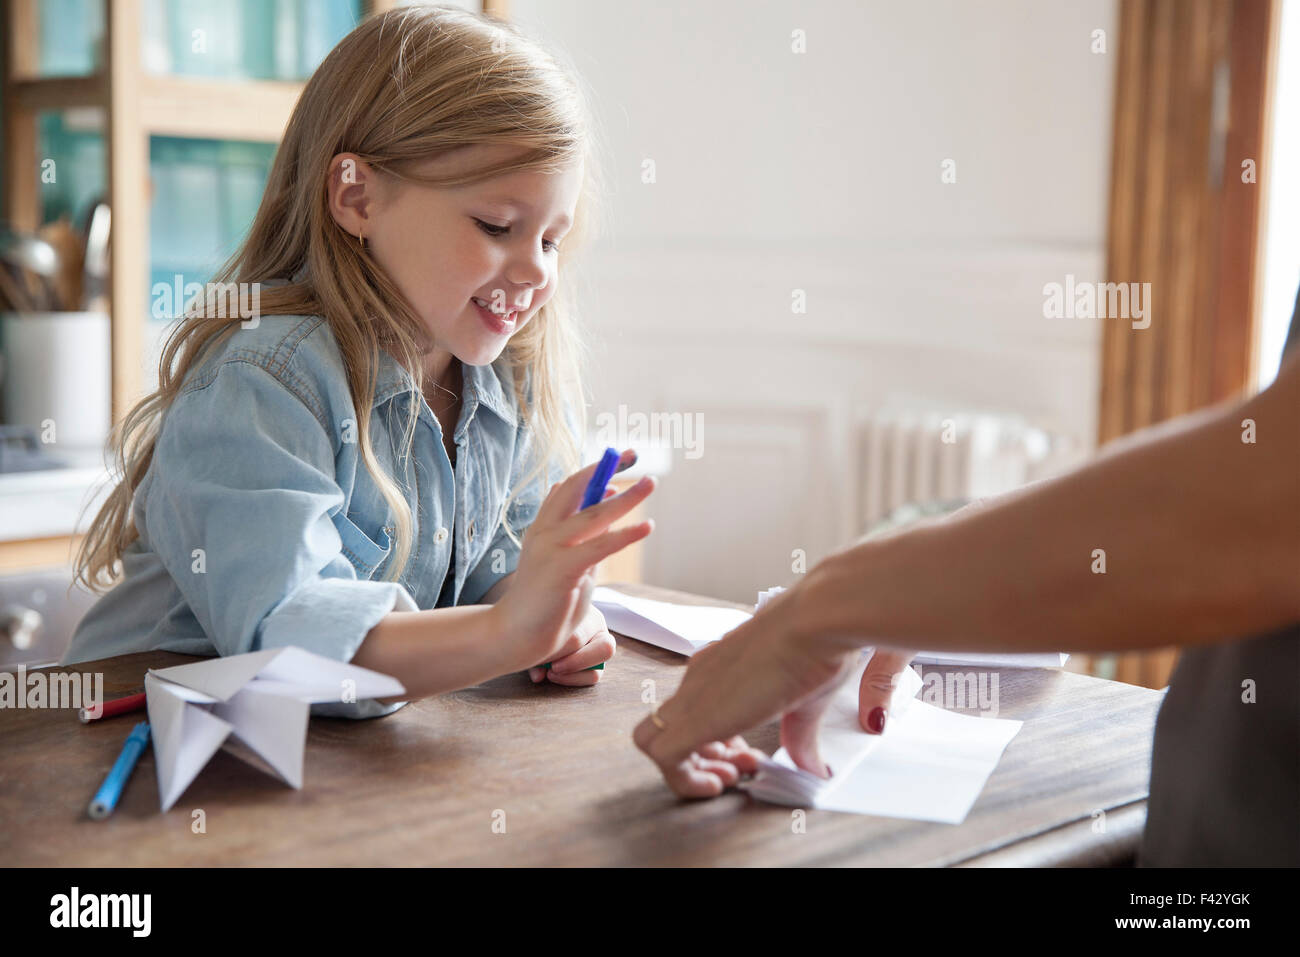 Little girl learning how to make paper airplane - Stock Image